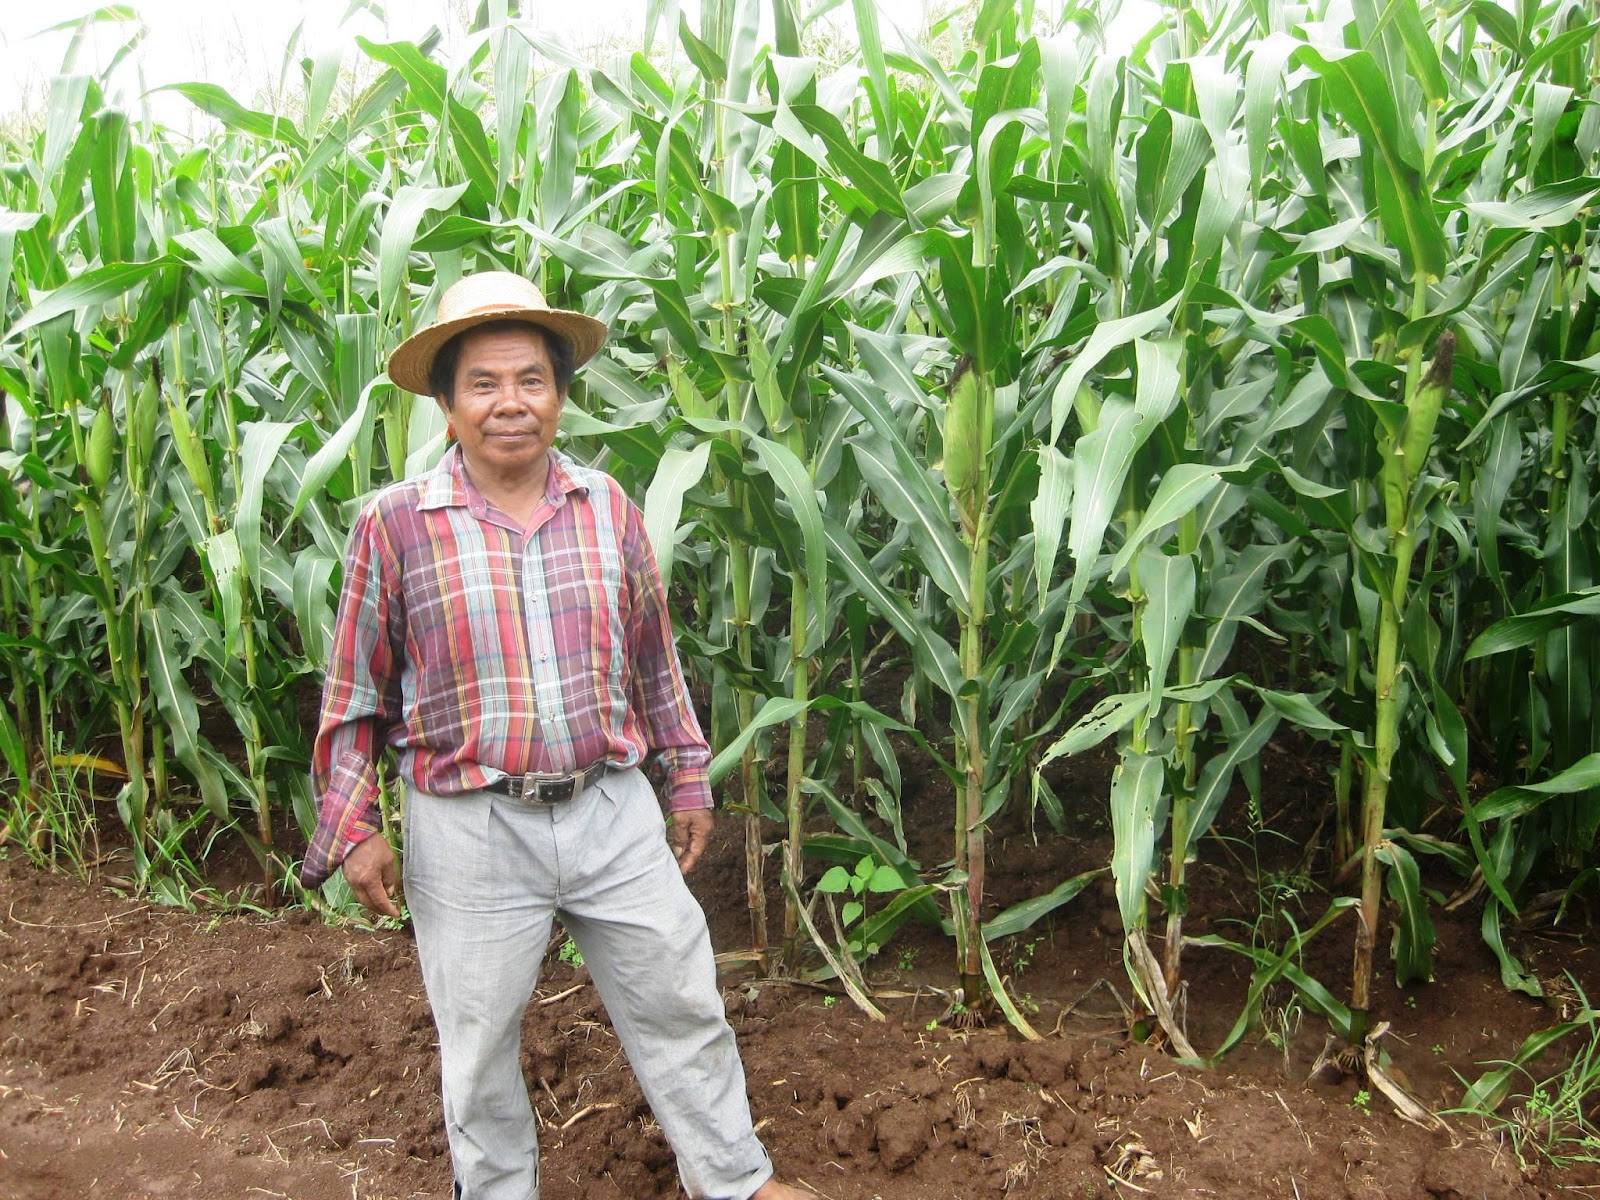 semilla nueva semilla nueva growing better ideas for a better ciriaco now grows corn sesame jalapenos and cashews on his five acre plot in willywood he is an enthusiastic participant in semilla nueva meetings and